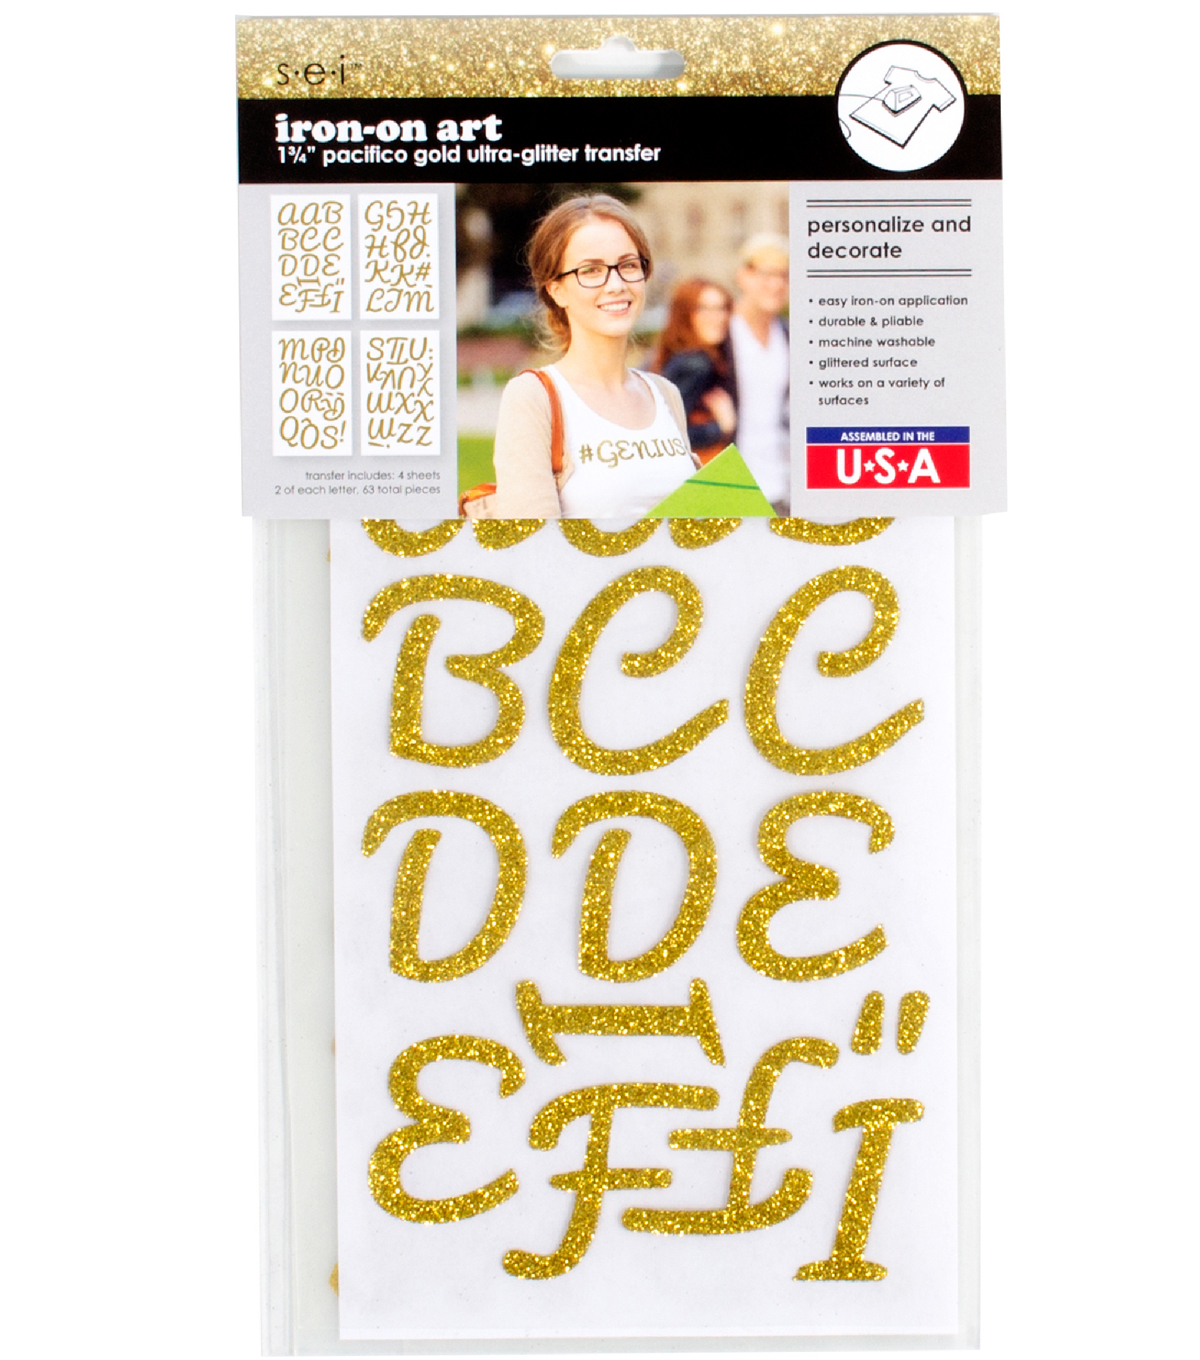 Sei Iron-on Art Ultra-Glitter Letters-Gold